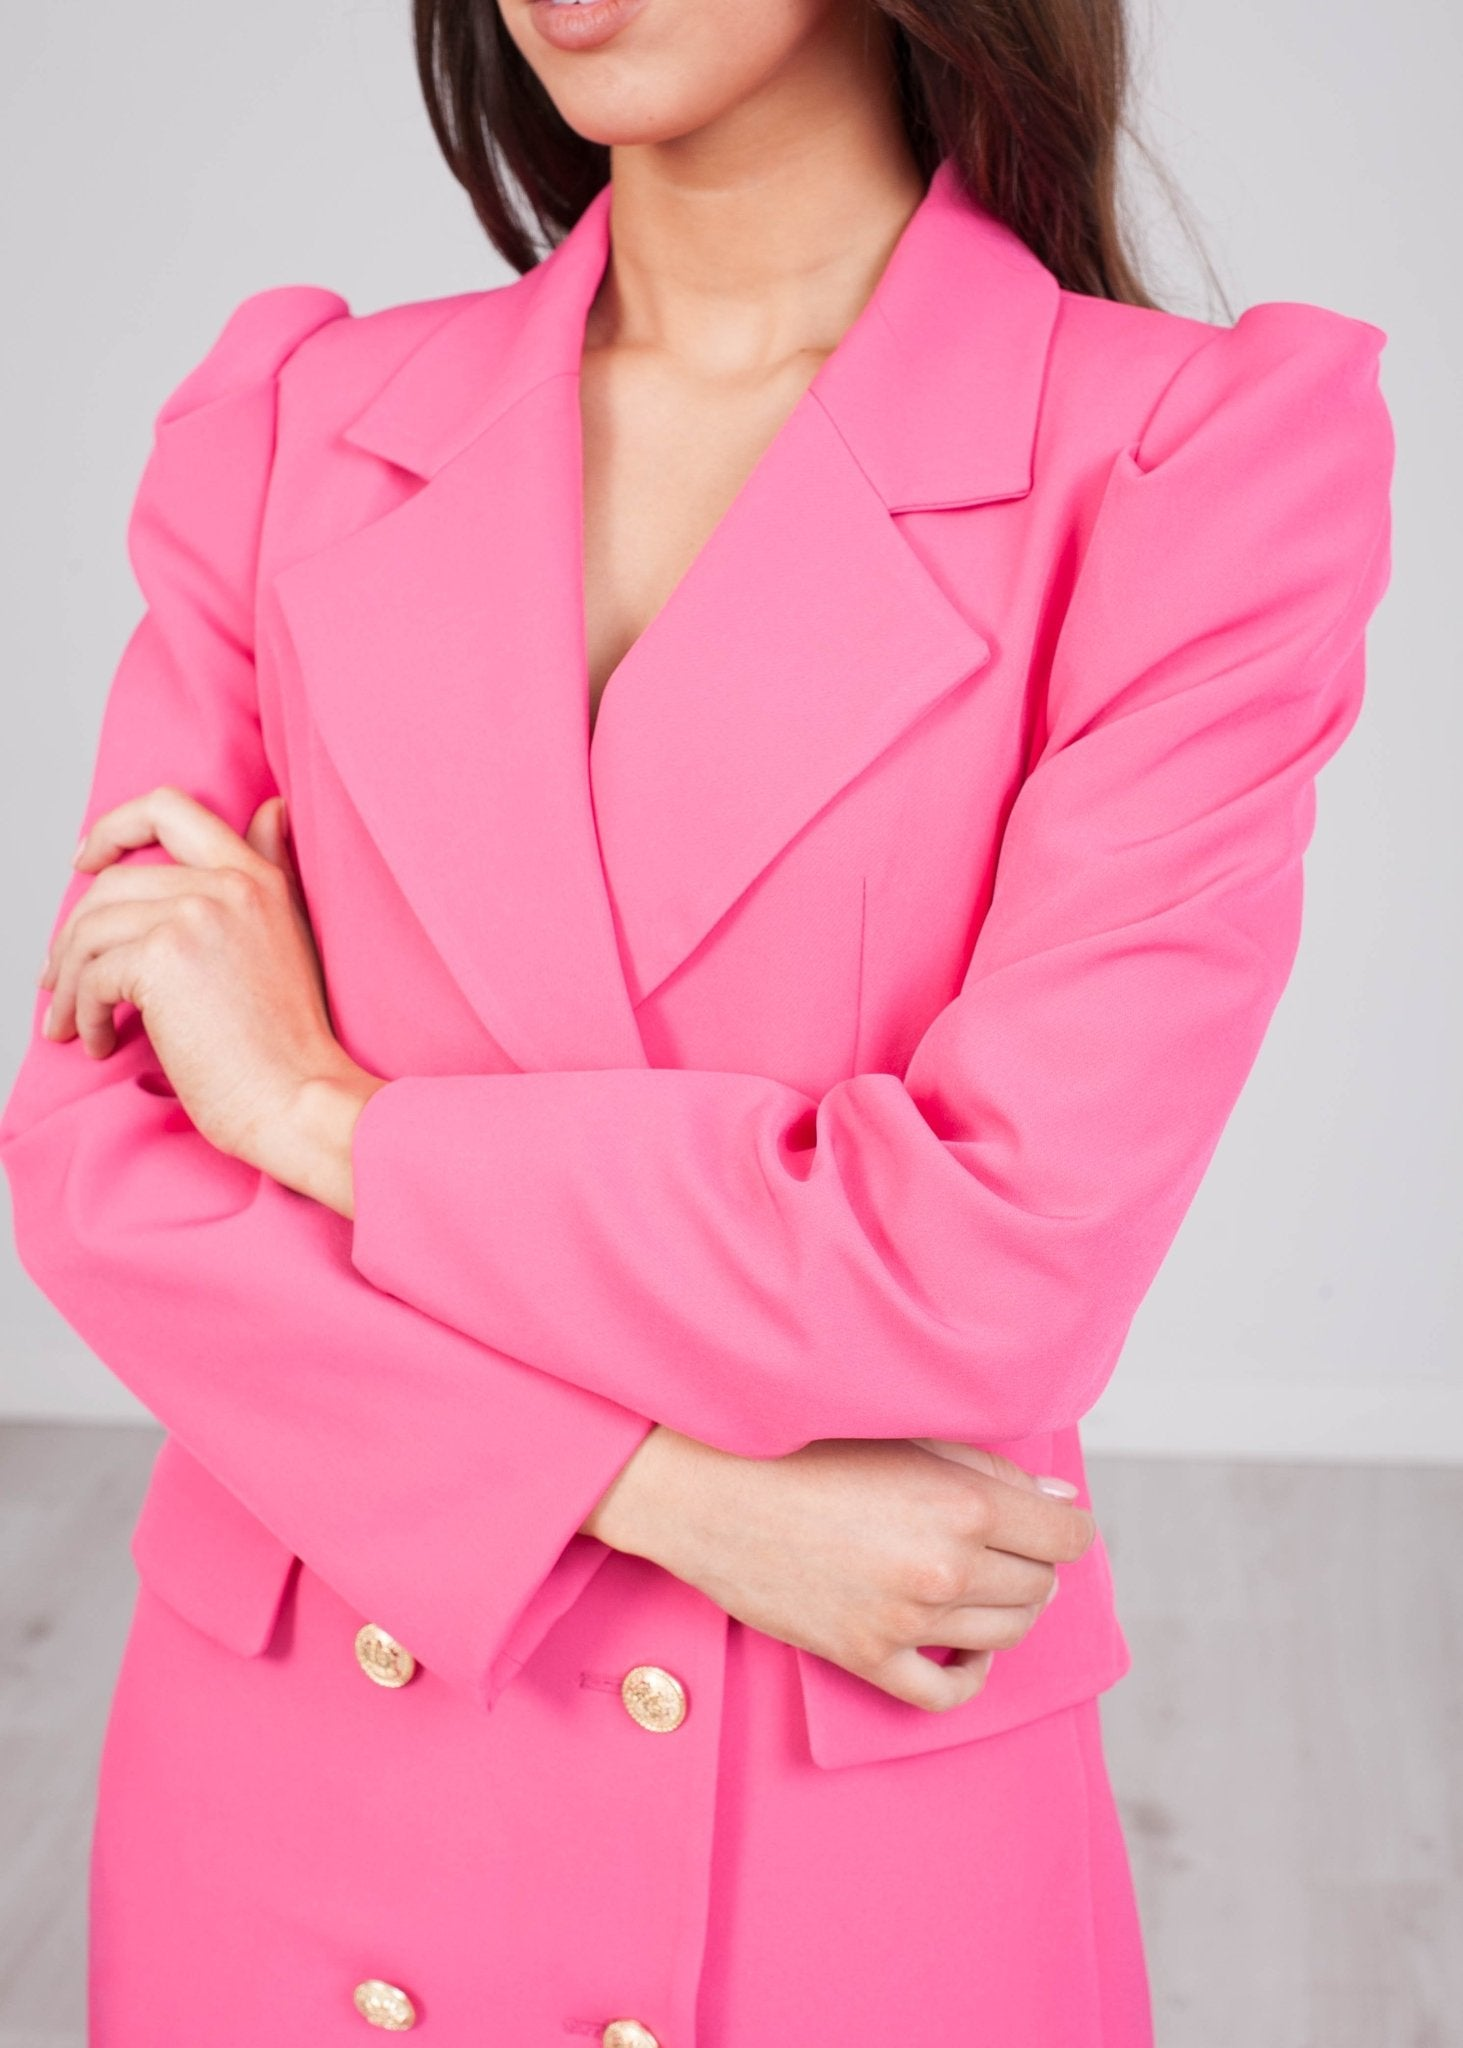 Arabella Pink Blazer Dress - The Walk in Wardrobe